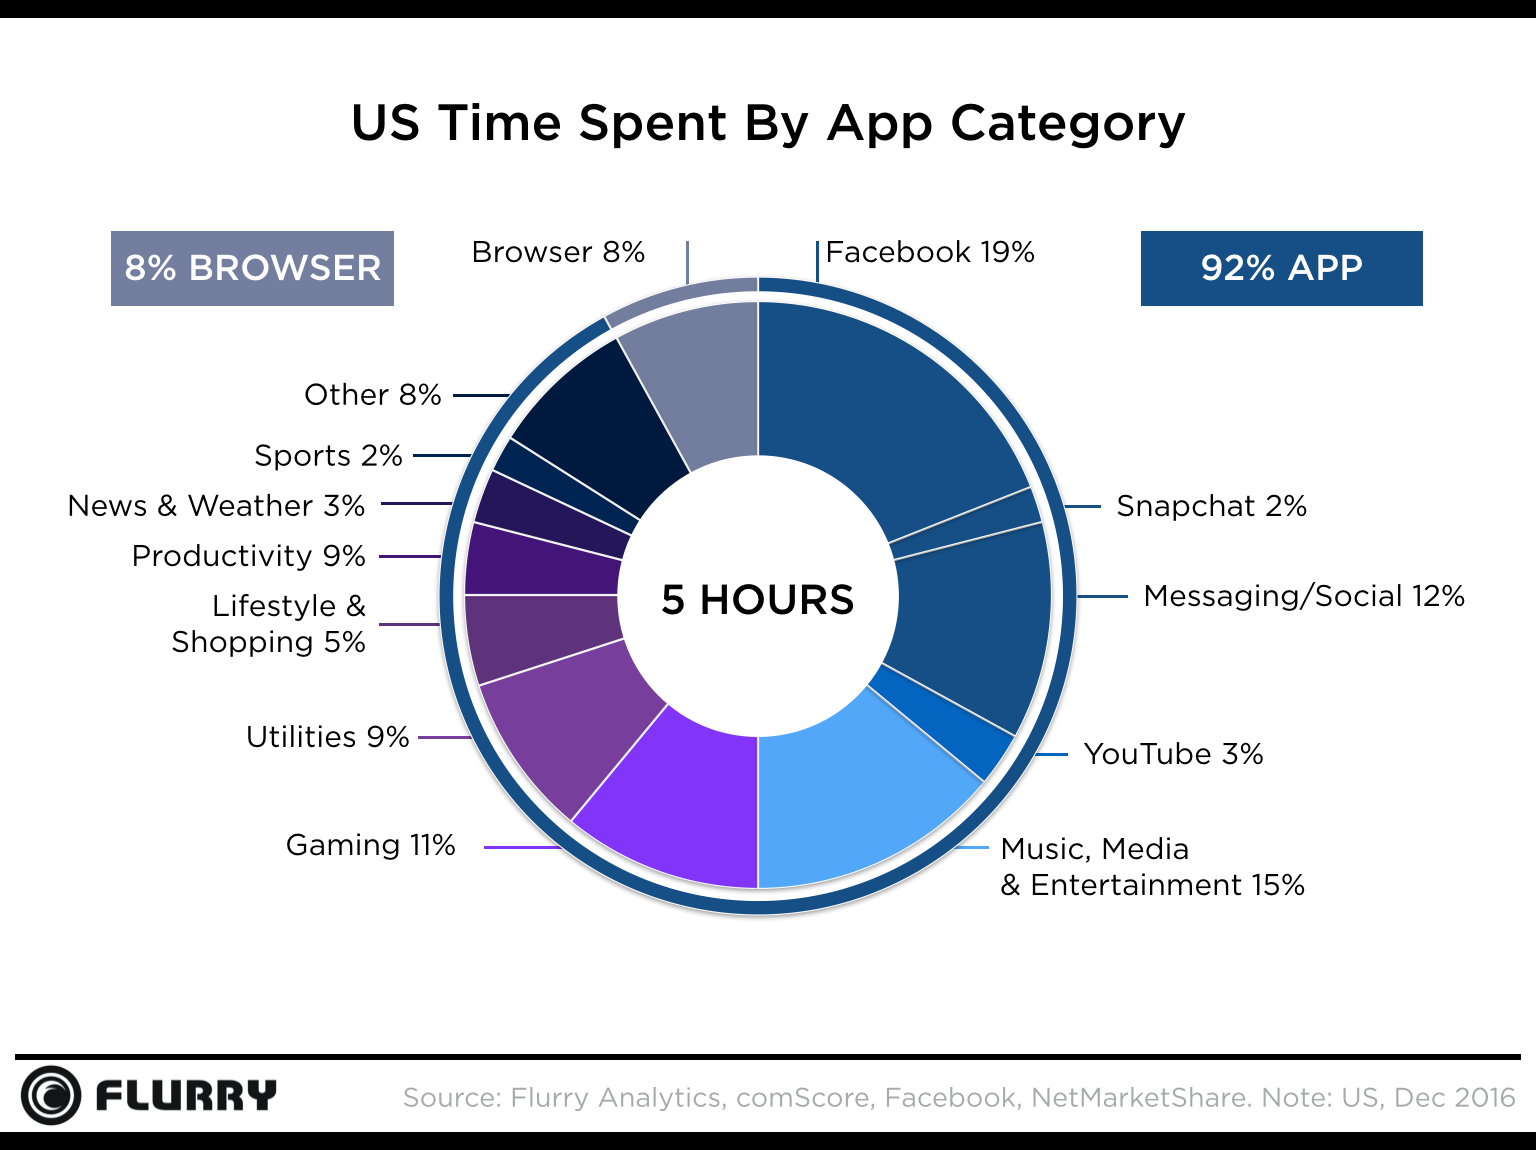 Chart about US time spent by app category